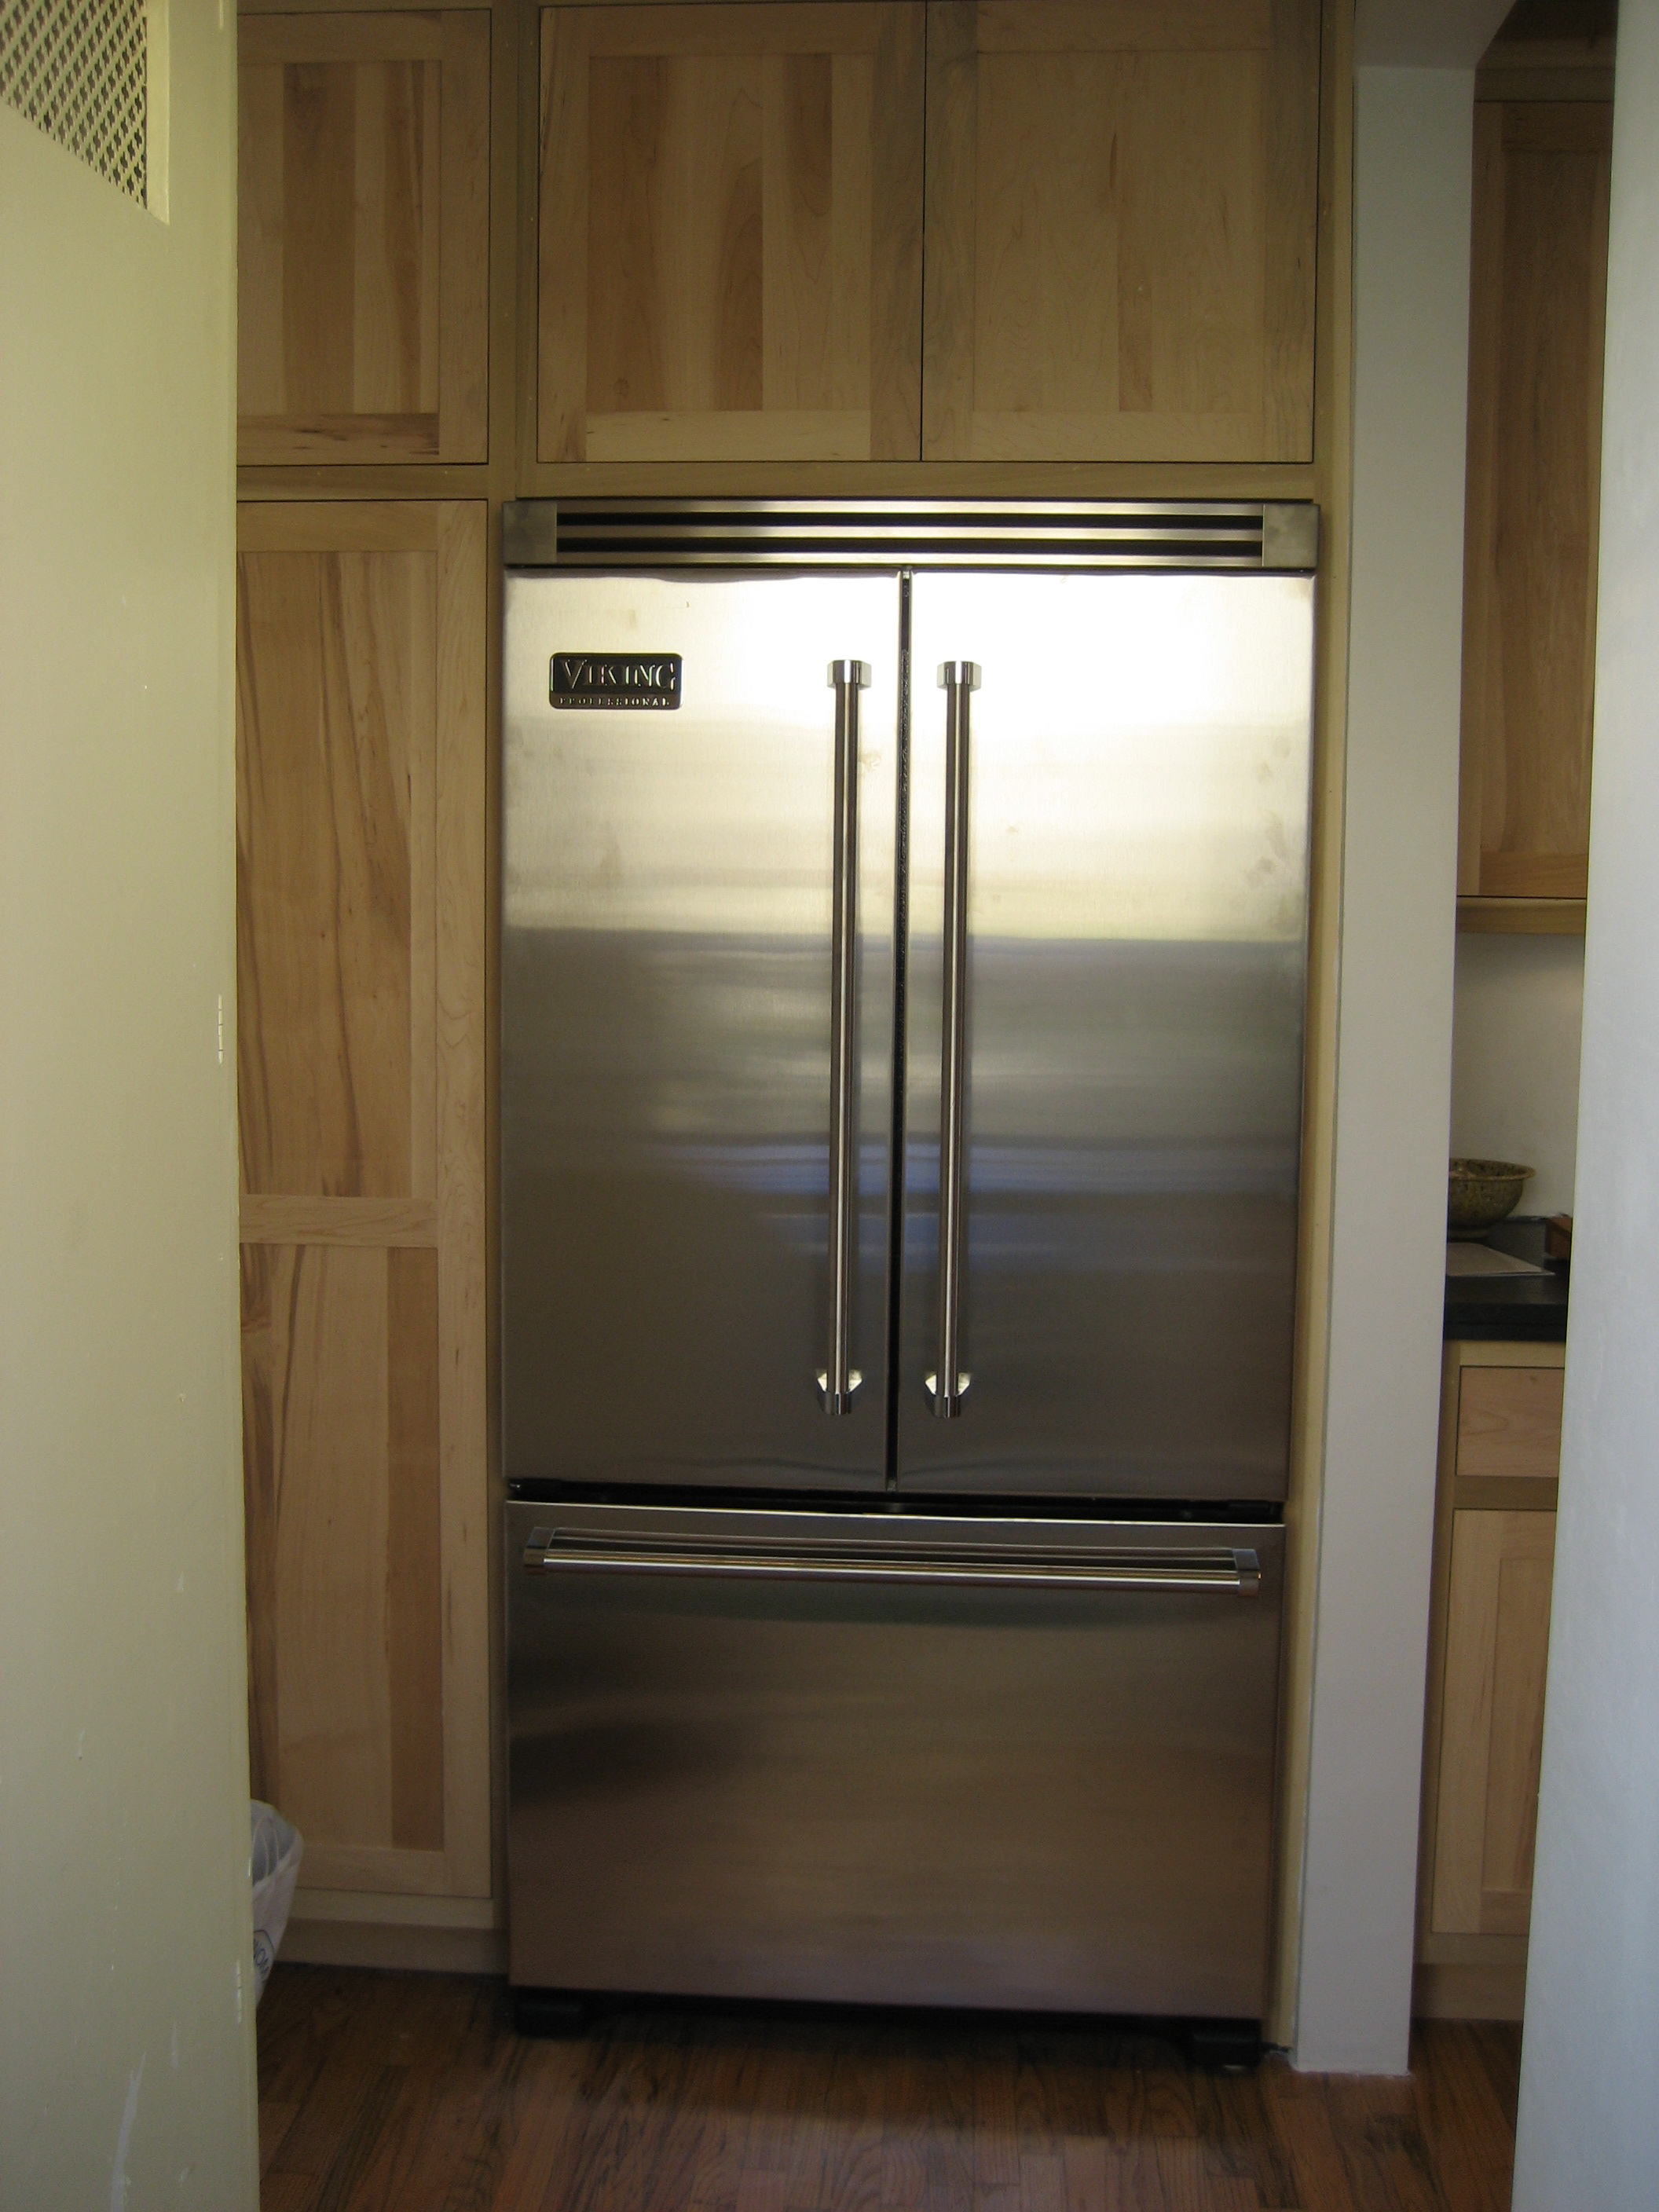 depth ft refrigerators side sa gray countertop countertops slate by cu p site ge refrigerator counter